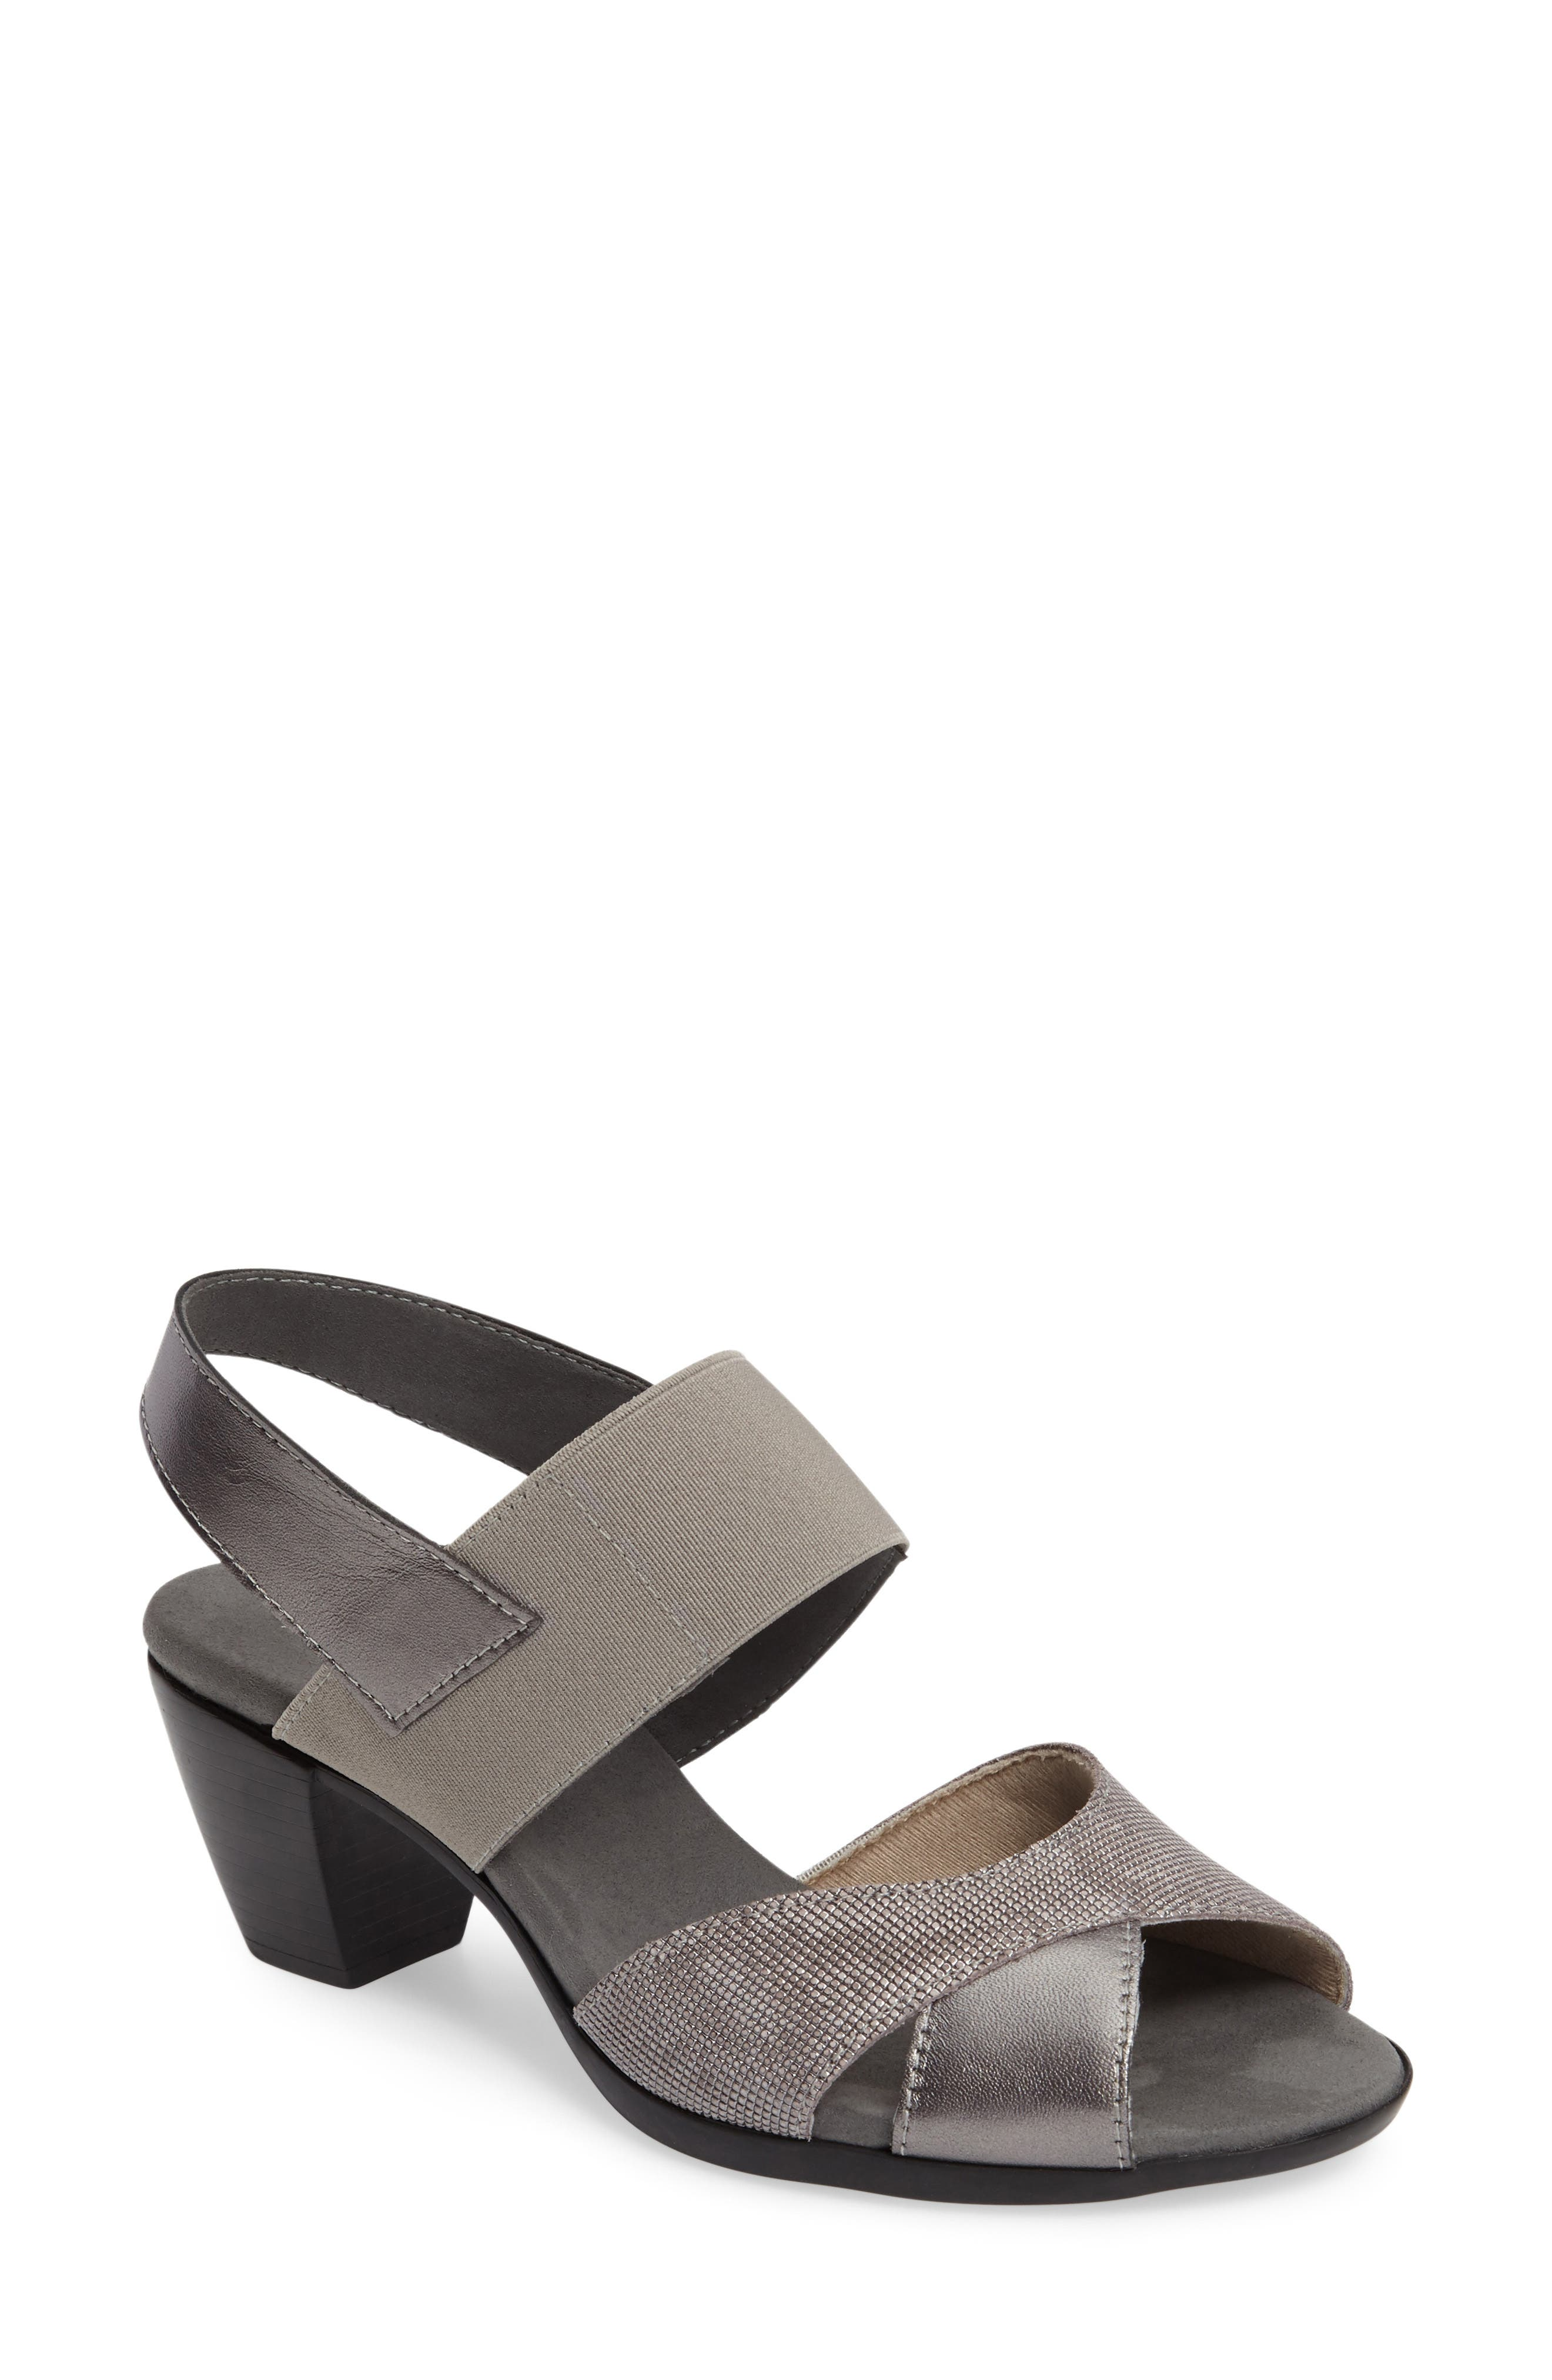 Darling Mixed Finish Slingback Sandal,                             Main thumbnail 1, color,                             Pewter Leather